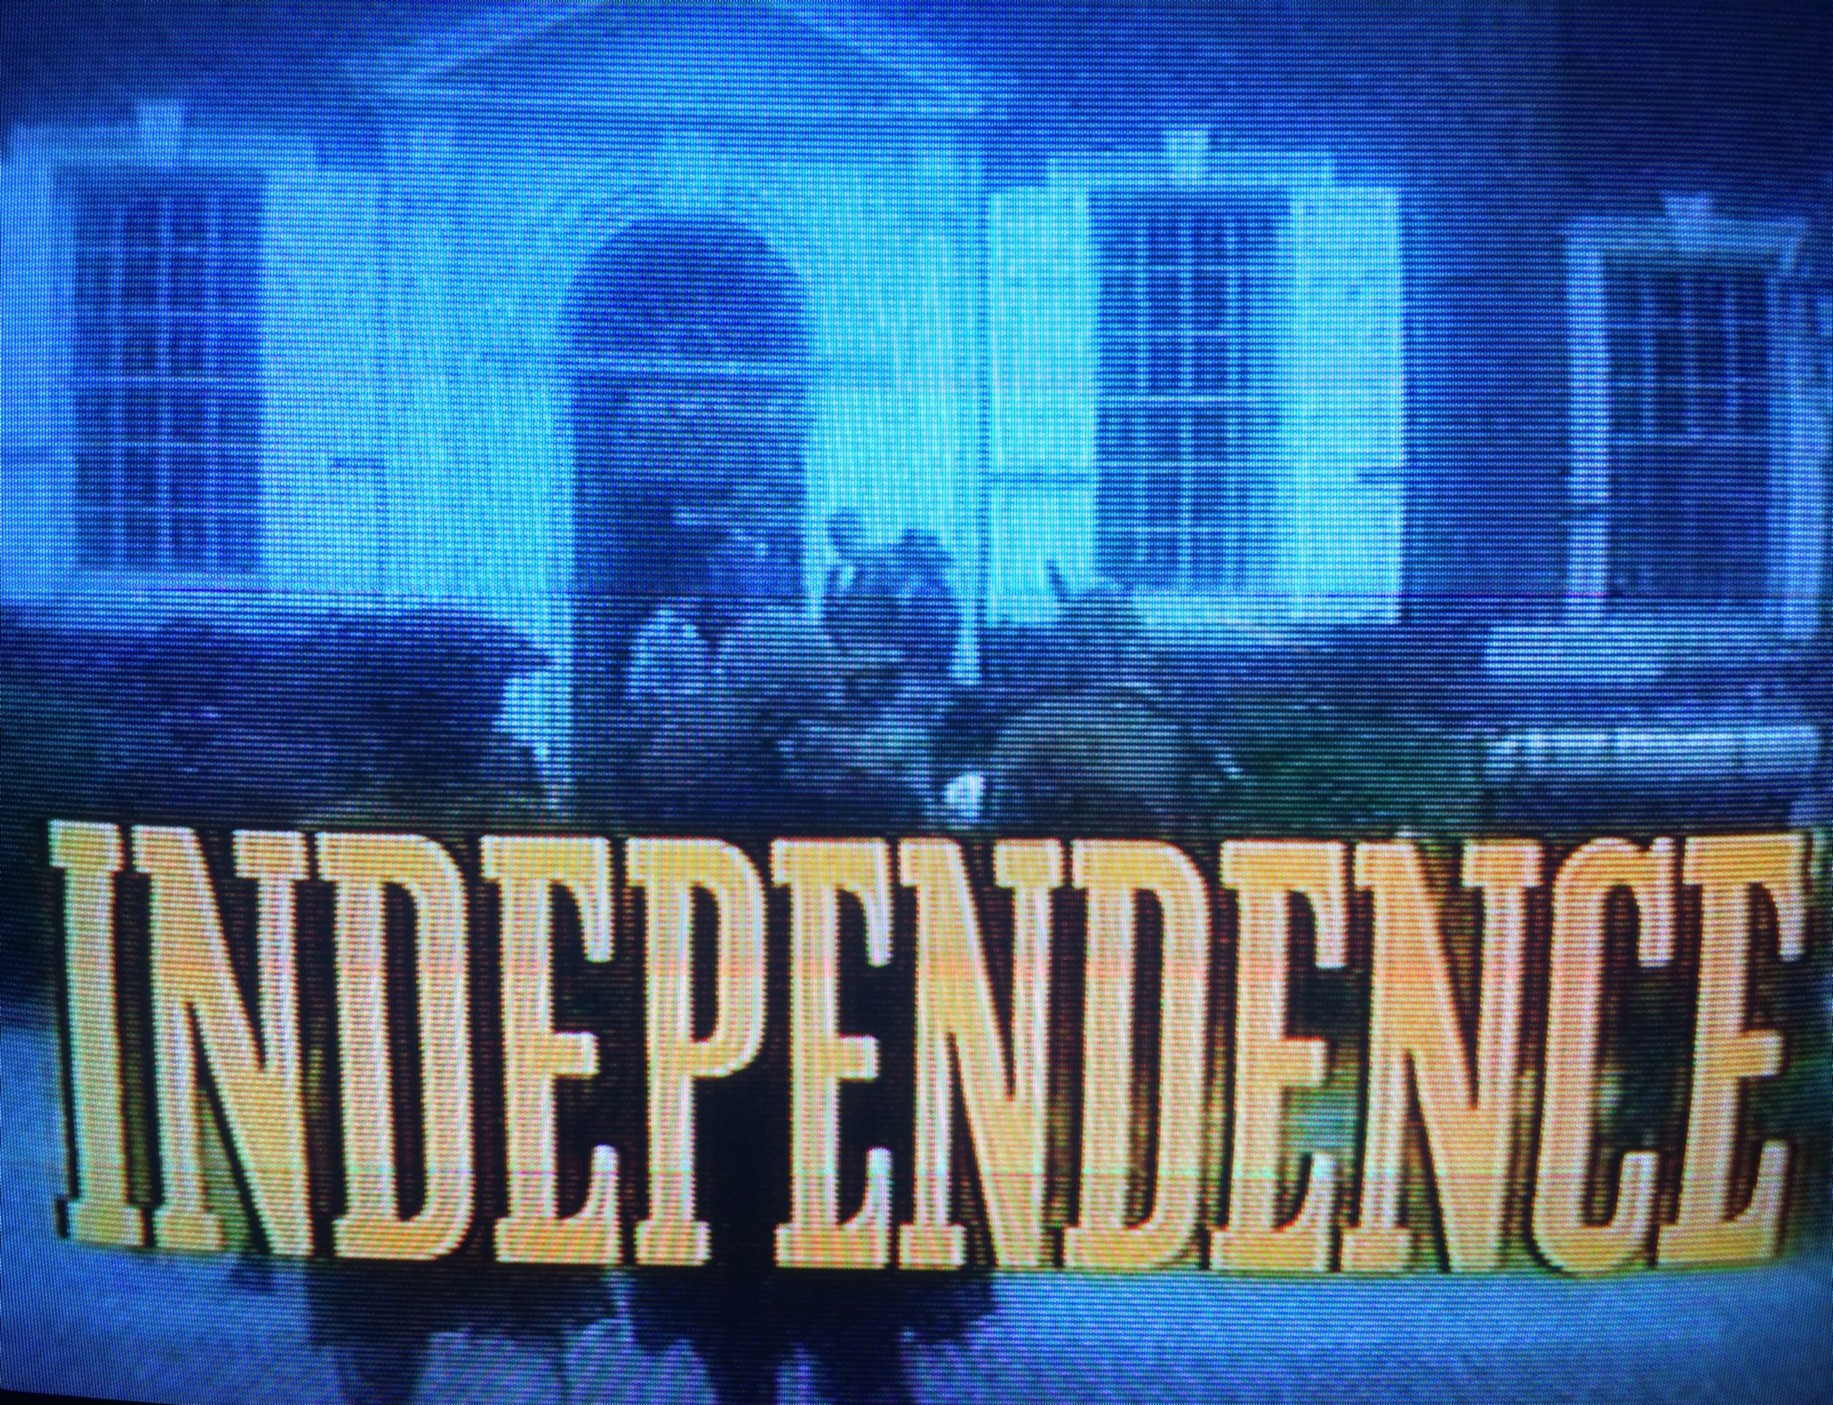 Losing Our Independence: Bicentennial Film In Last Days